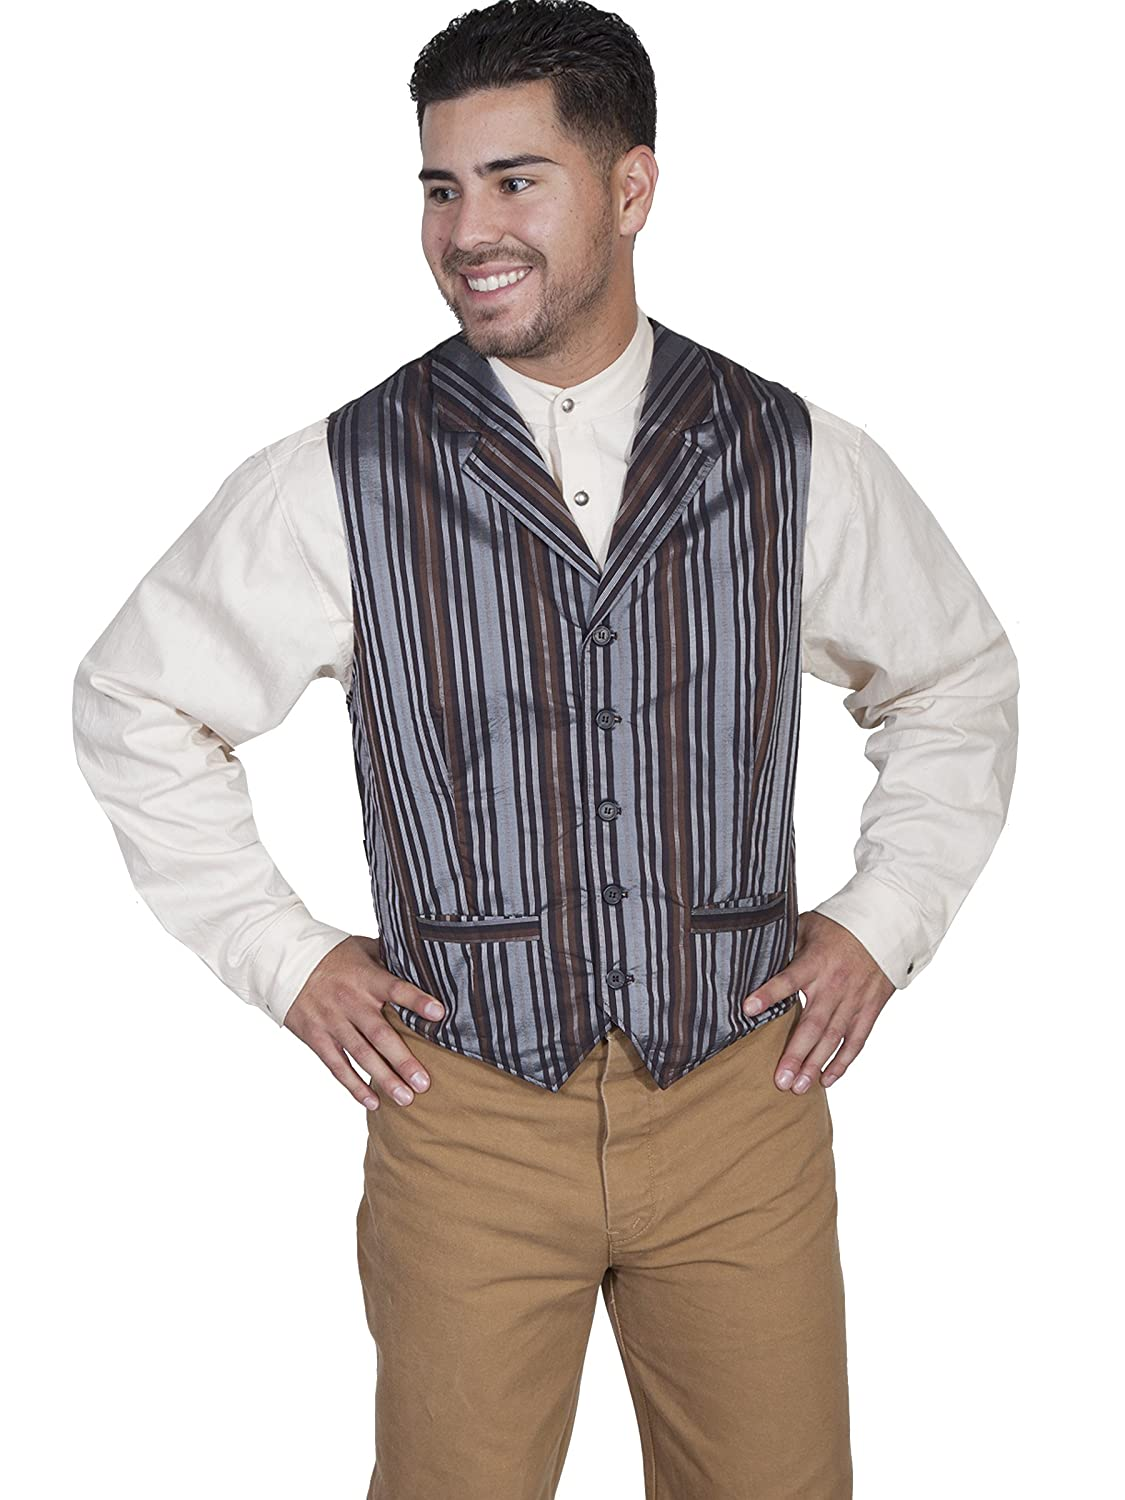 Steampunk Clothing- Men's Scully RW268 Mens Stripe Vest $55.05 AT vintagedancer.com